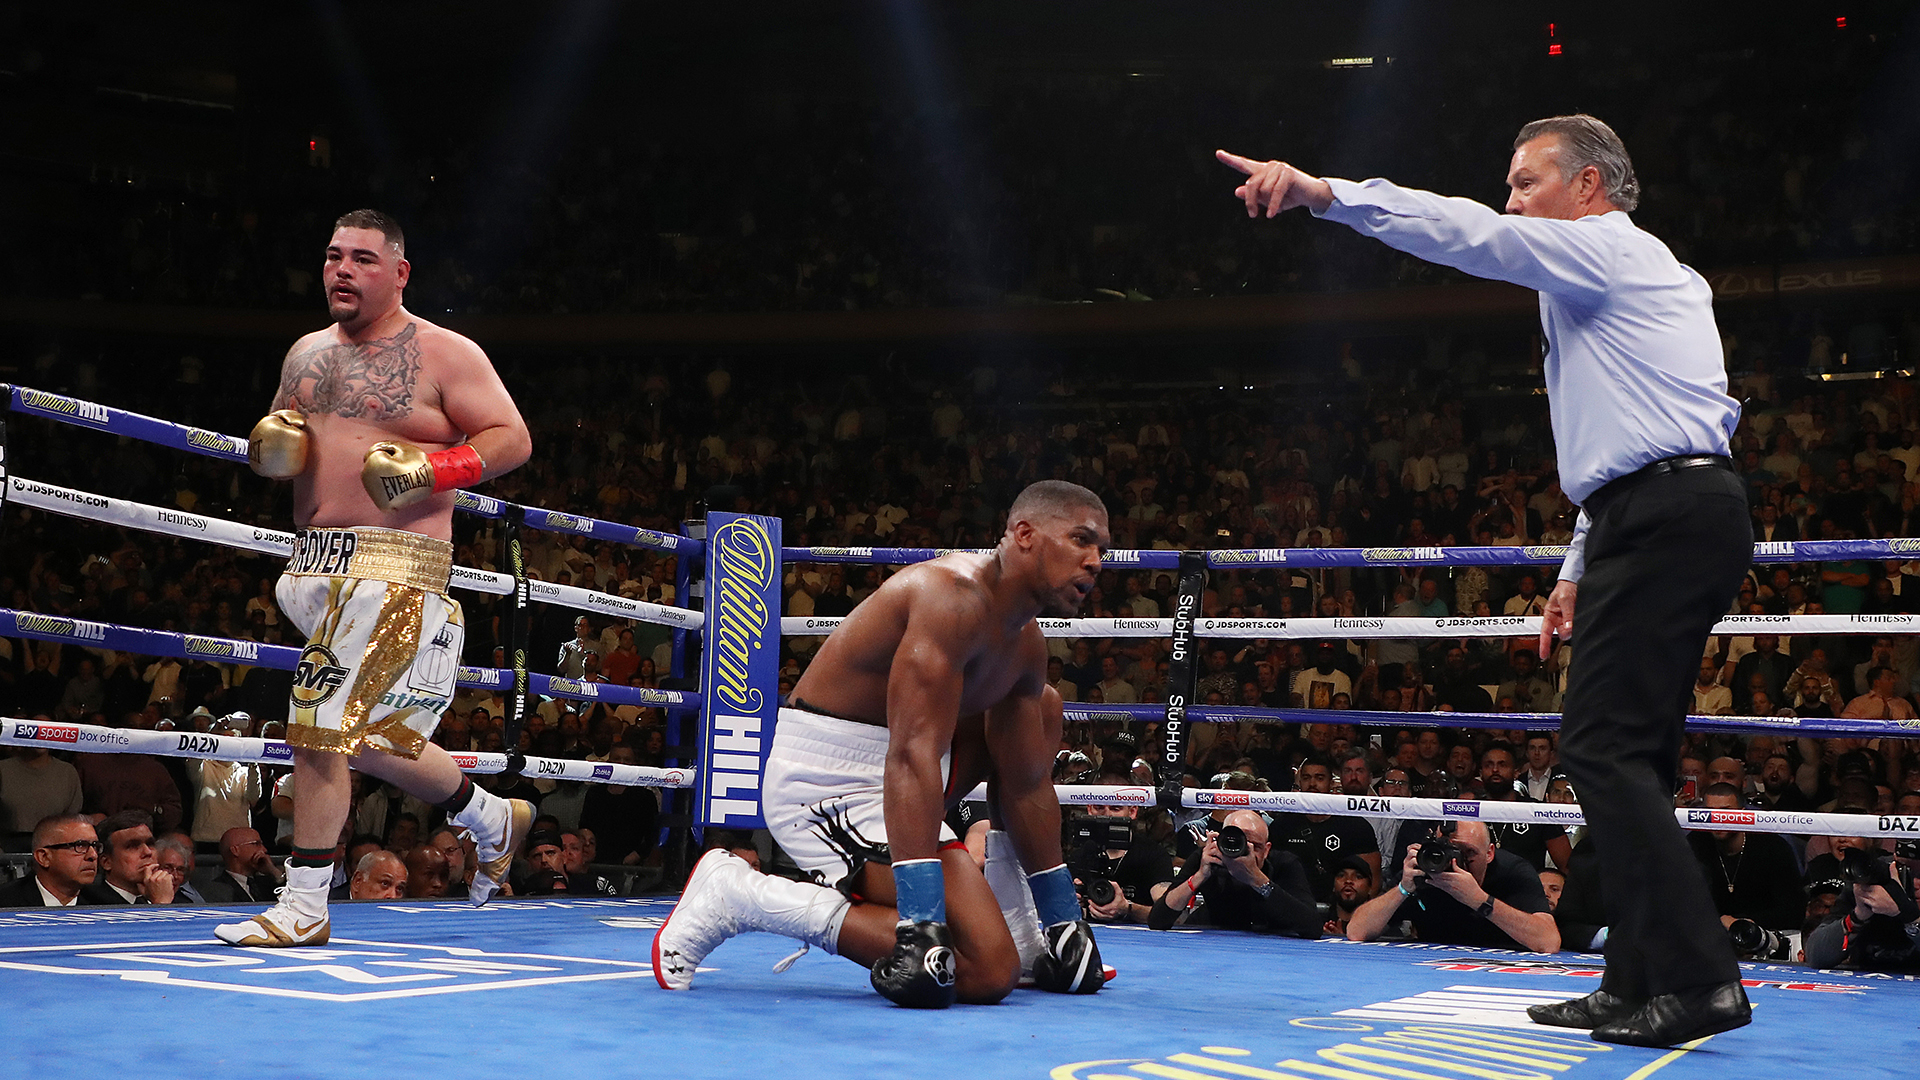 Anthony Joshua's trainer clarifies comments: 'Concussed' may not have been right term to use